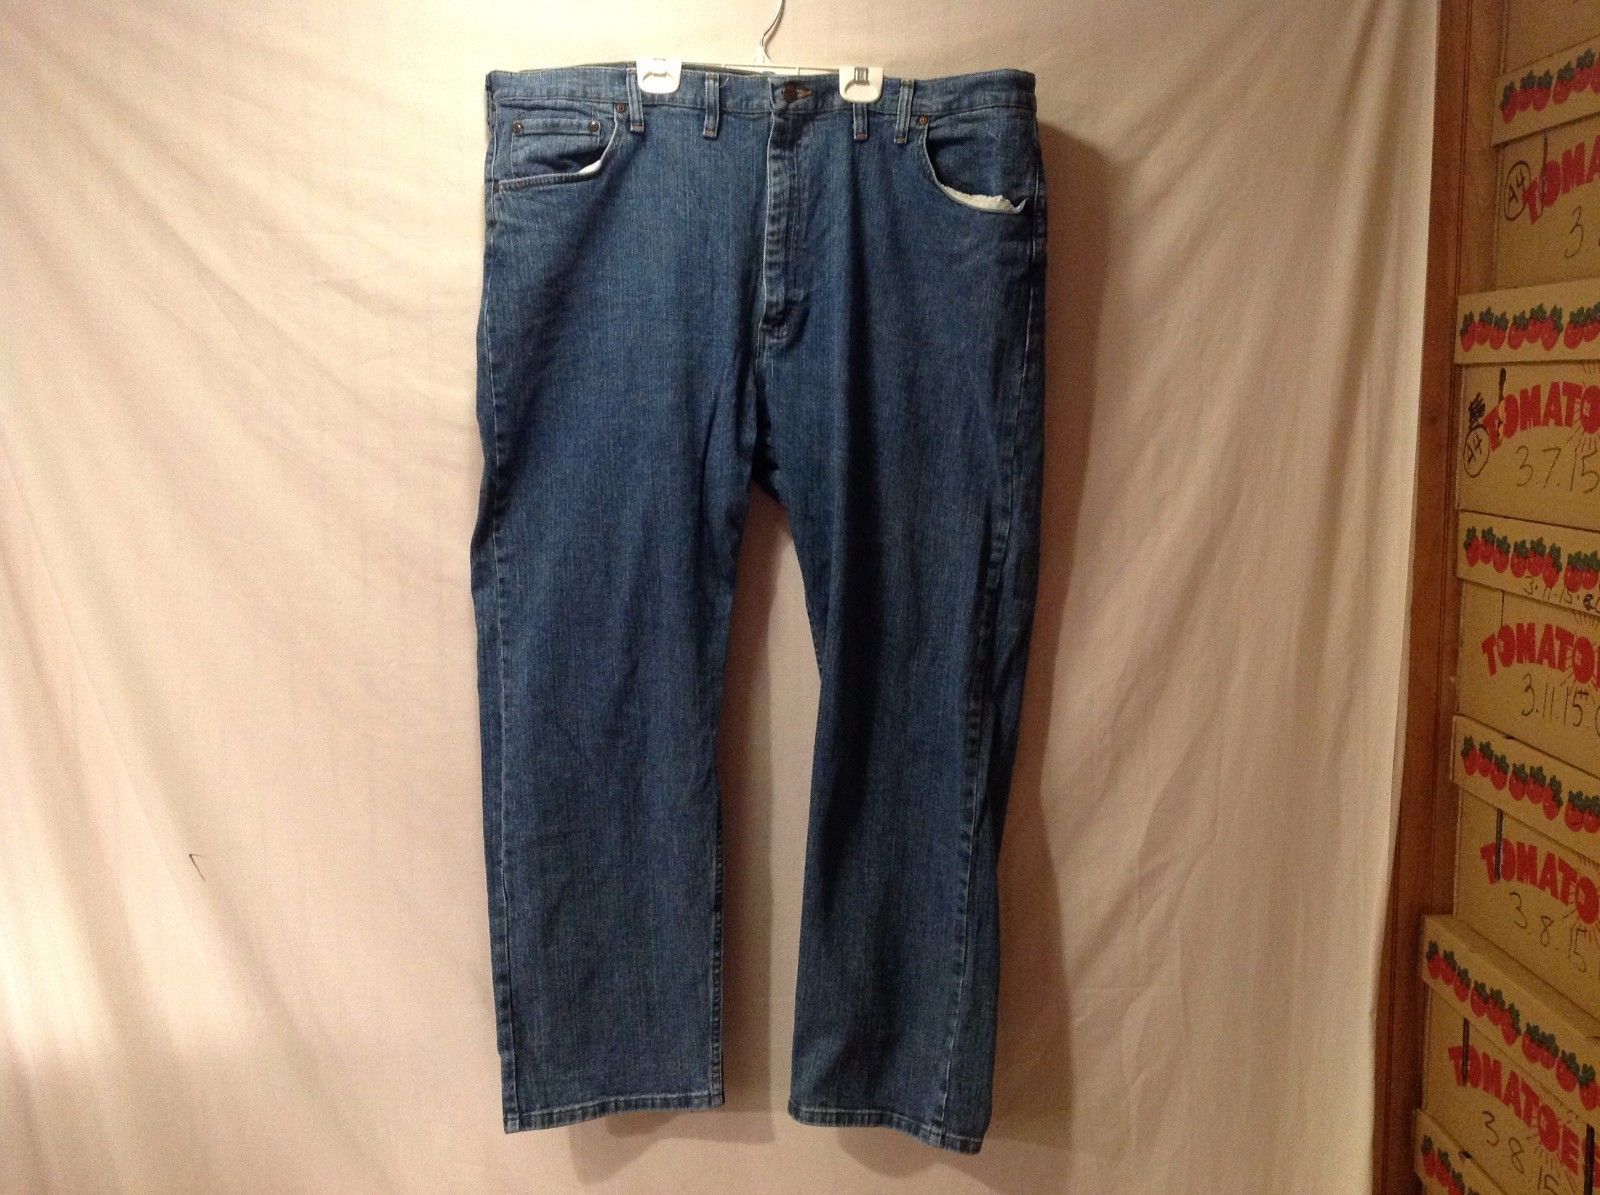 Good Condition Wrangler Men's Jeans Size 44 x 30 Relaxed Fit Straight Leg